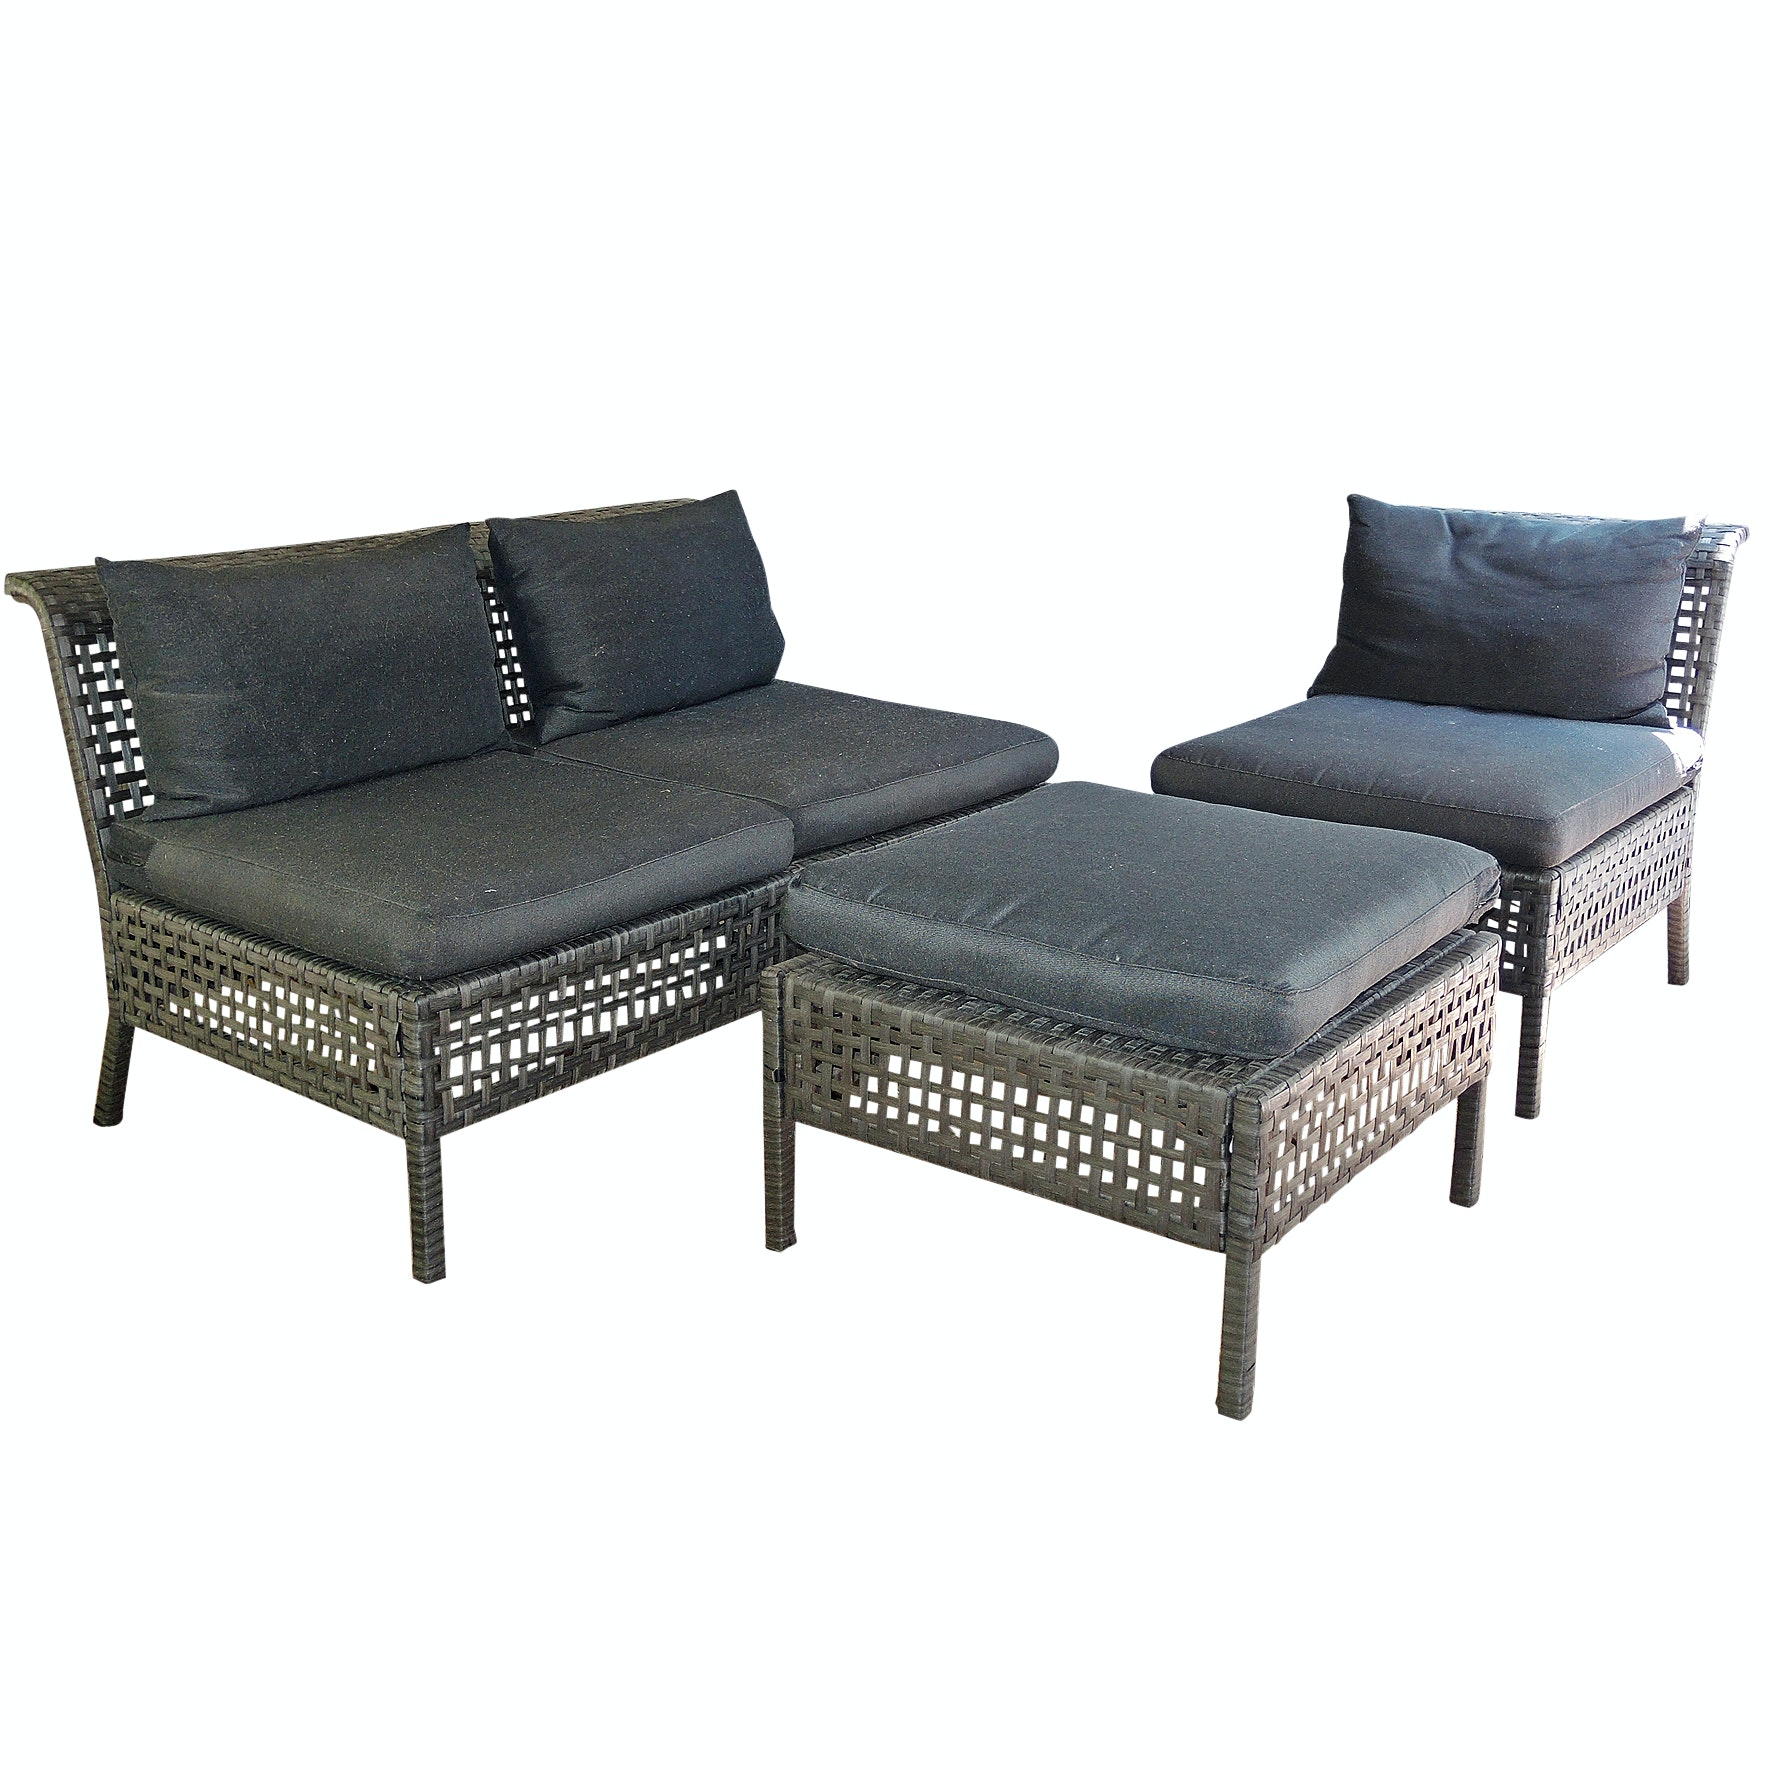 IKEA Modular Patio Sofa, Chair and Ottoman